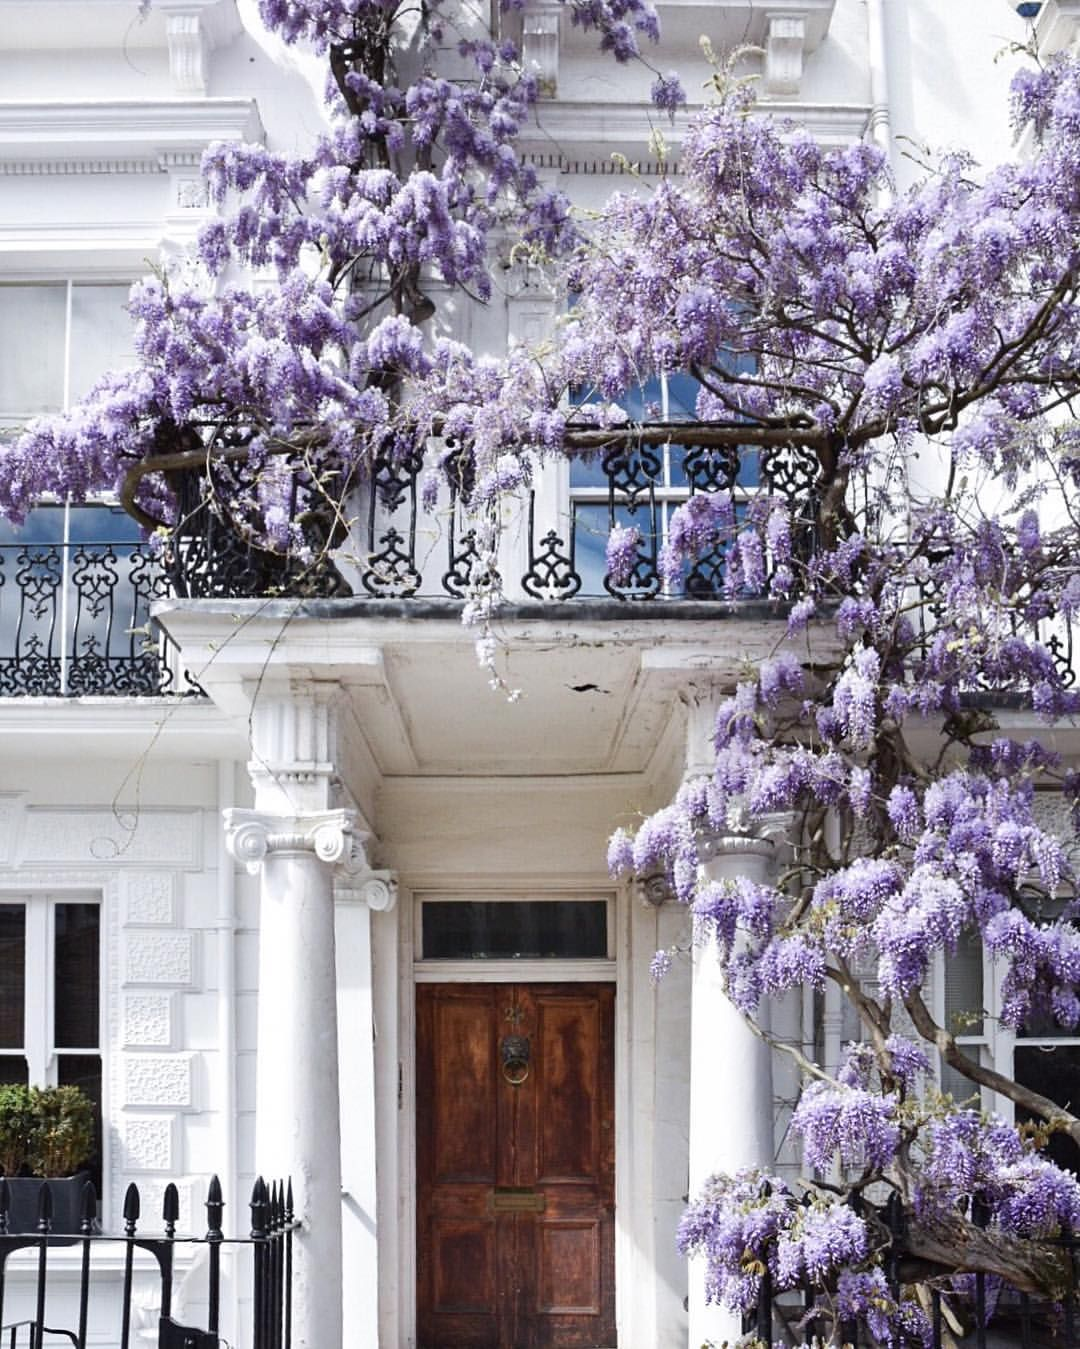 Wisteria Home In 2019: Nothing Hill, London, England Where We Used To Live And We